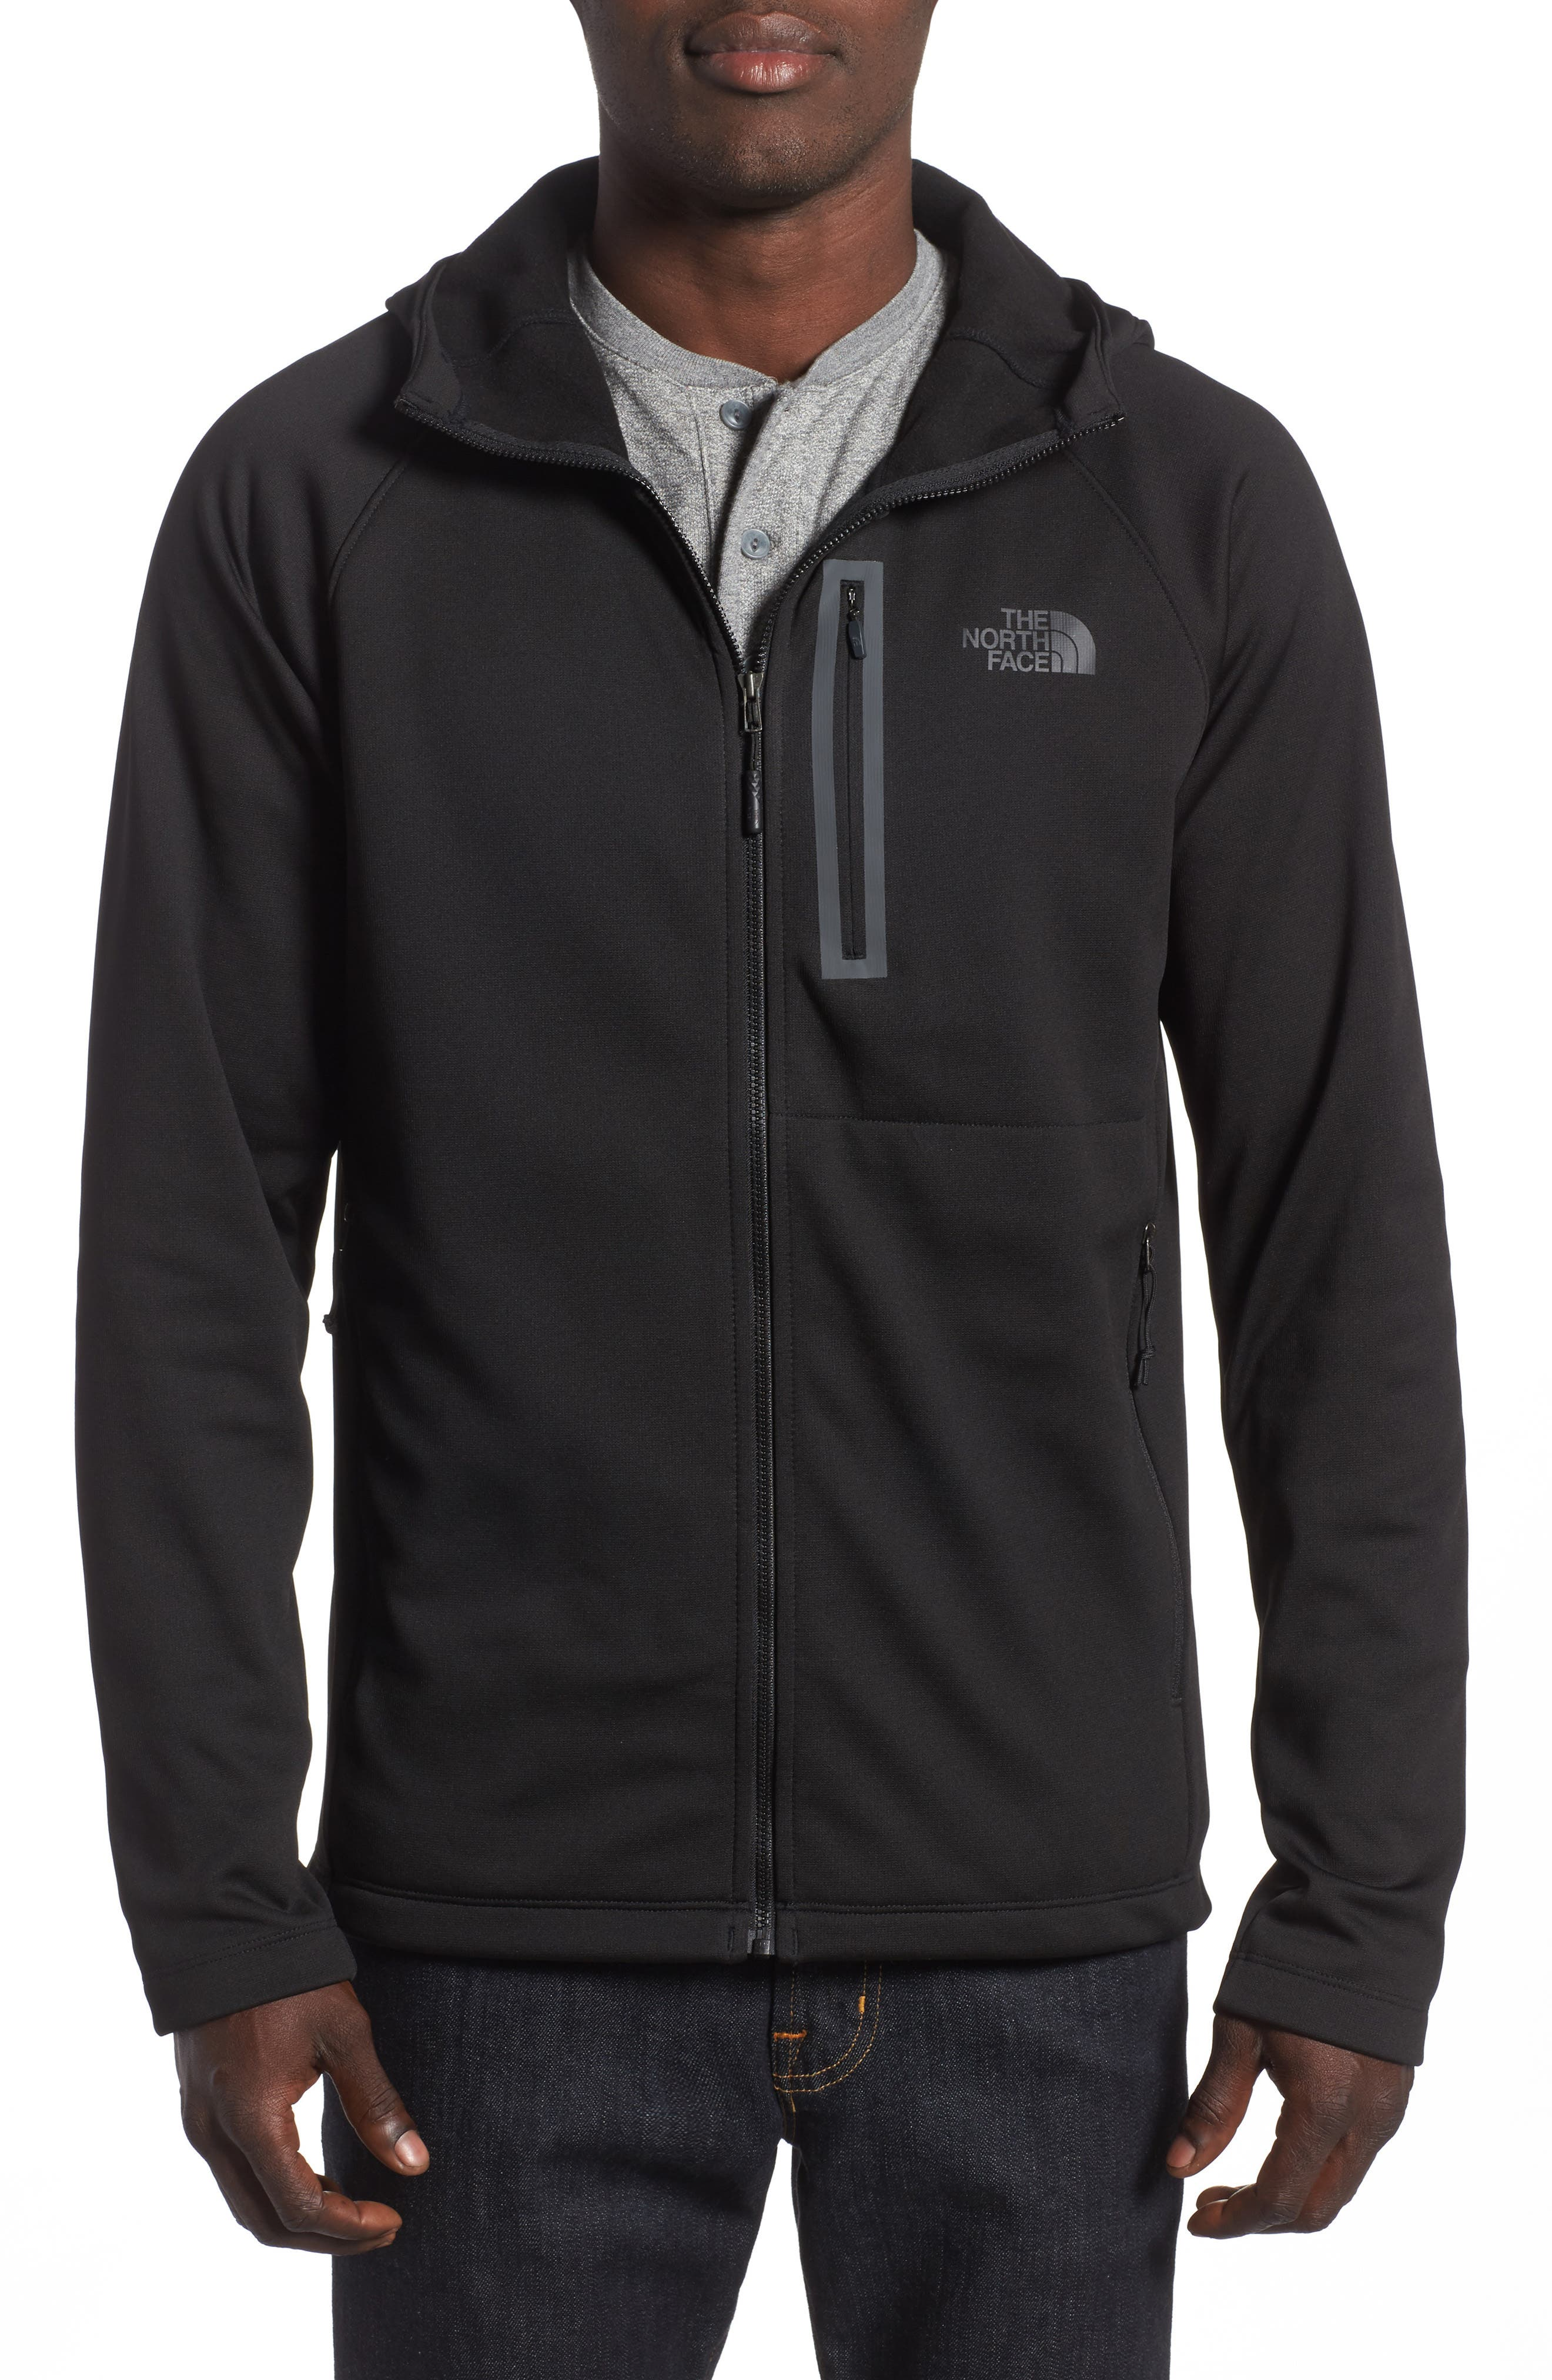 The North Face Canyonlands Full Zip Hoodie